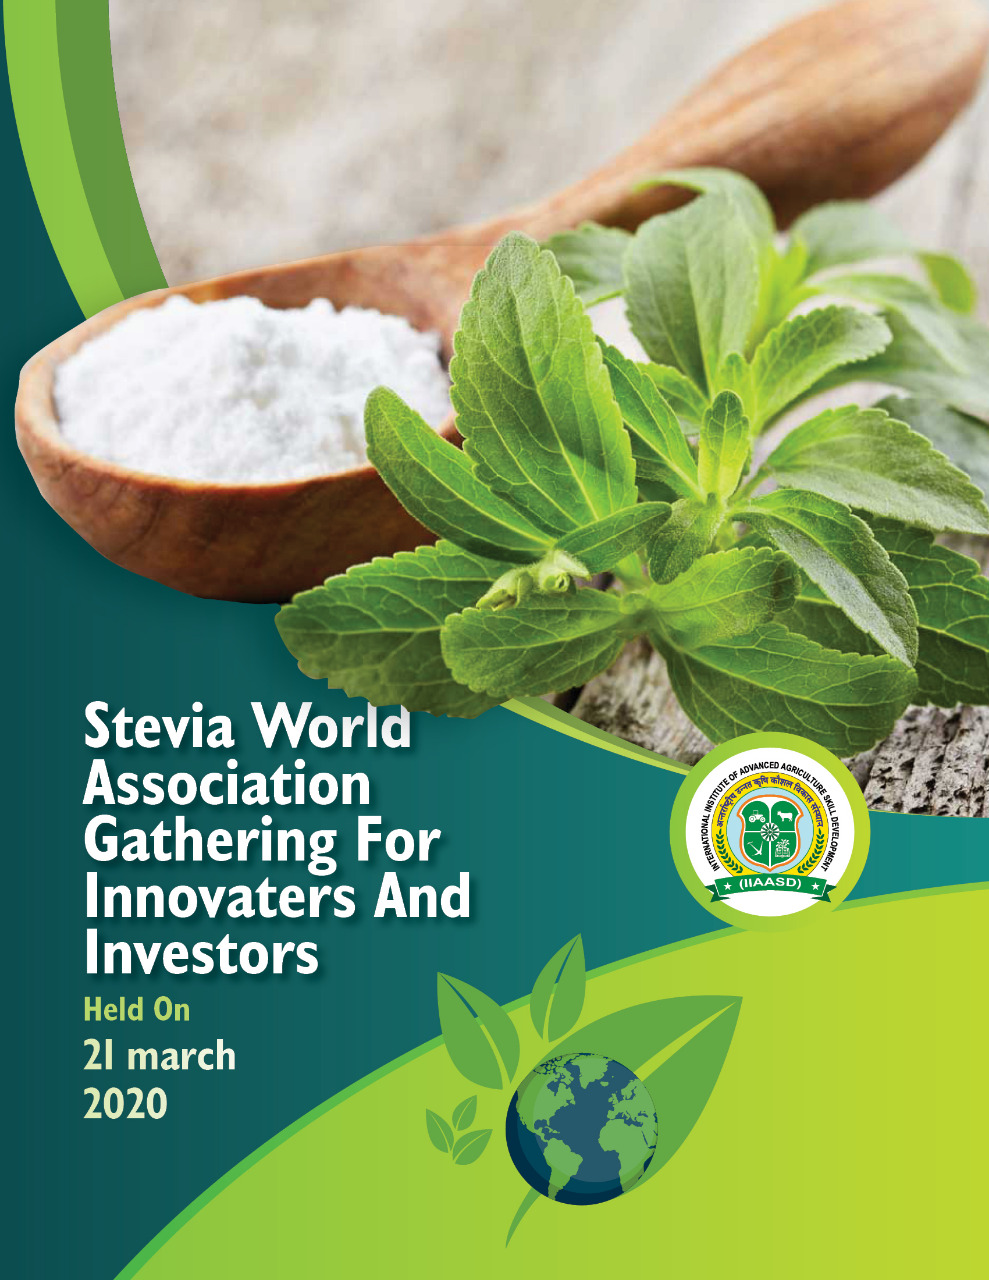 Stevia World Association Gathering For Innovaters And Investors to be held on 21 March 2020., Jaipur, Rajasthan, India